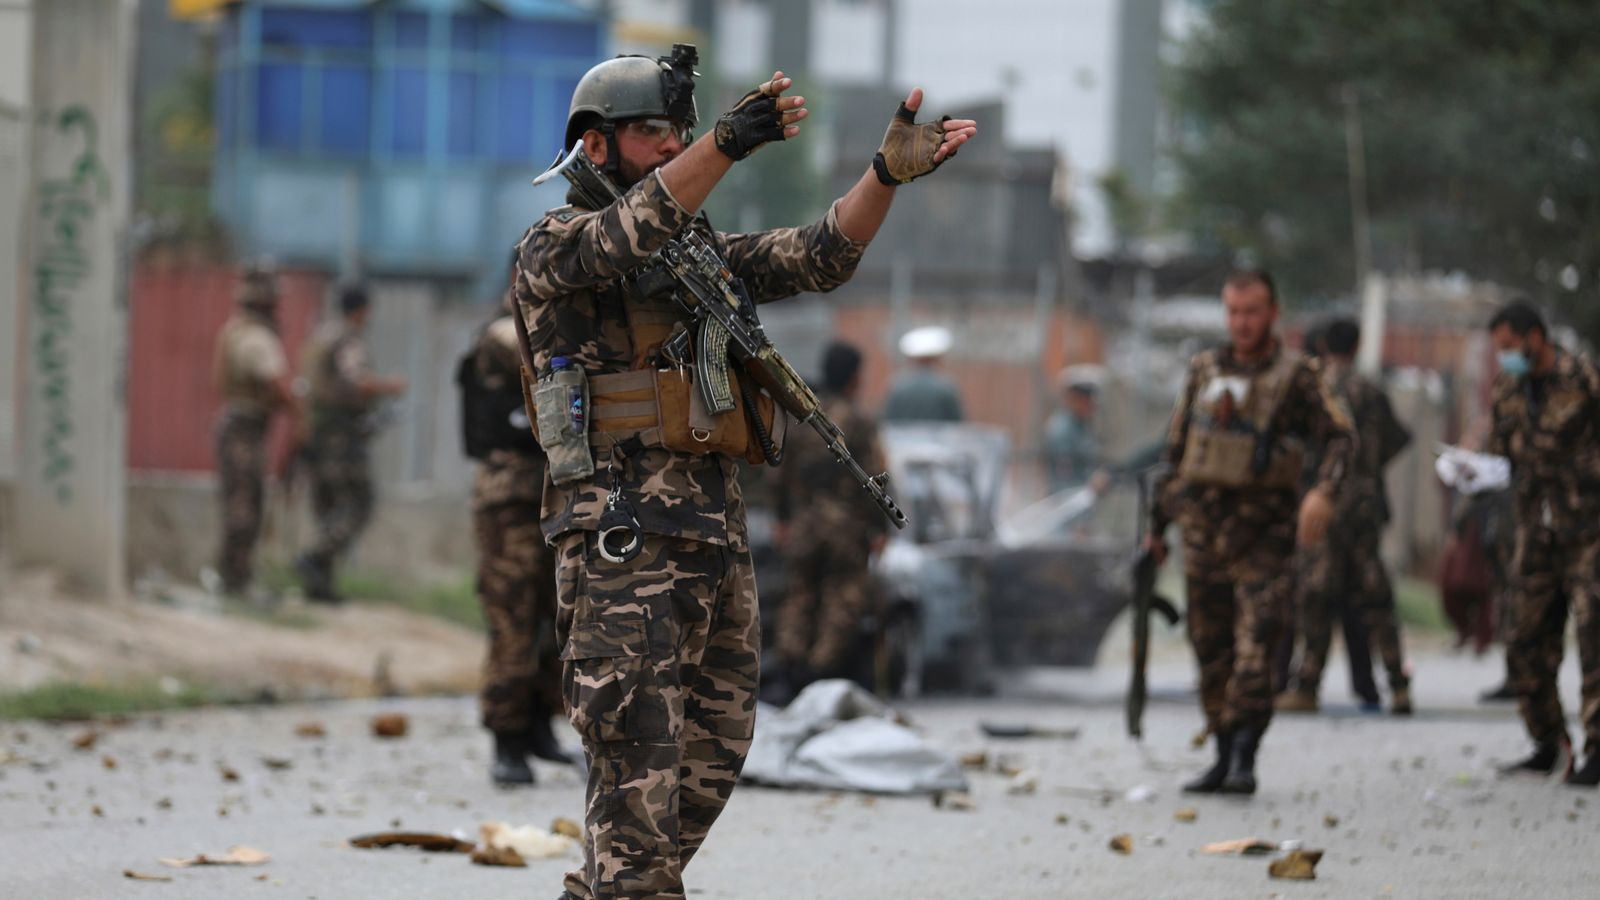 Afghanistan: Next few weeks pivotal as humanitarian crisis and fight for power looms